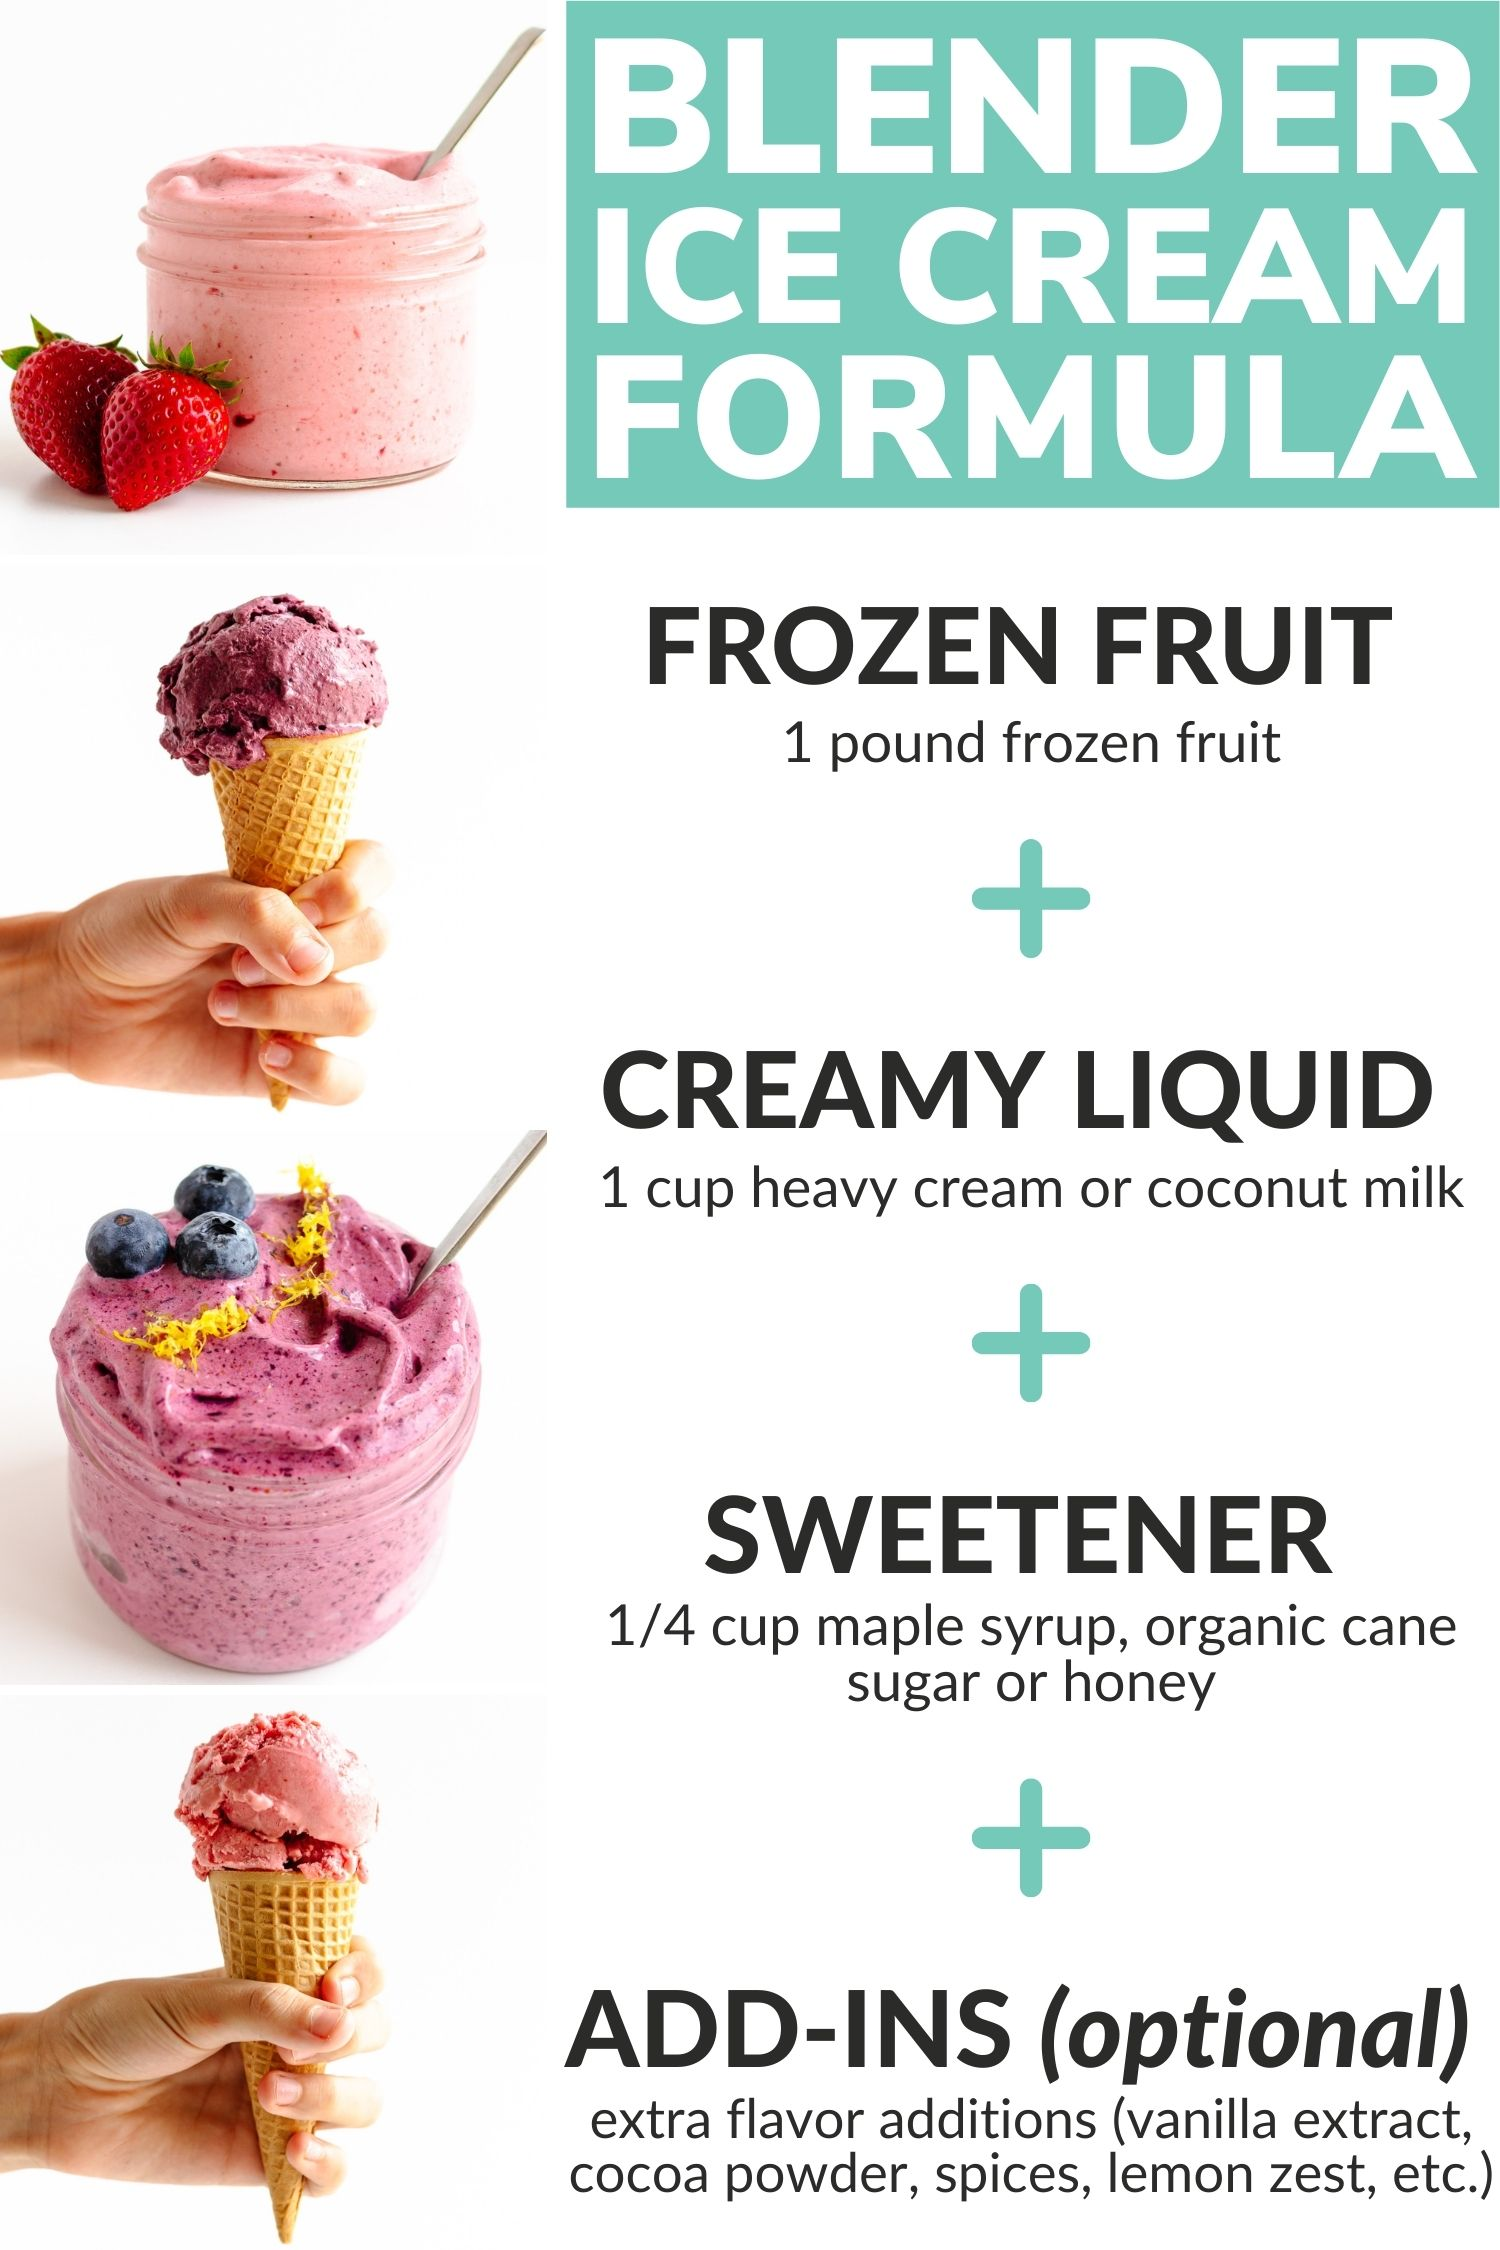 Infographic featuring an easy blender ice cream formula using frozen fruit.